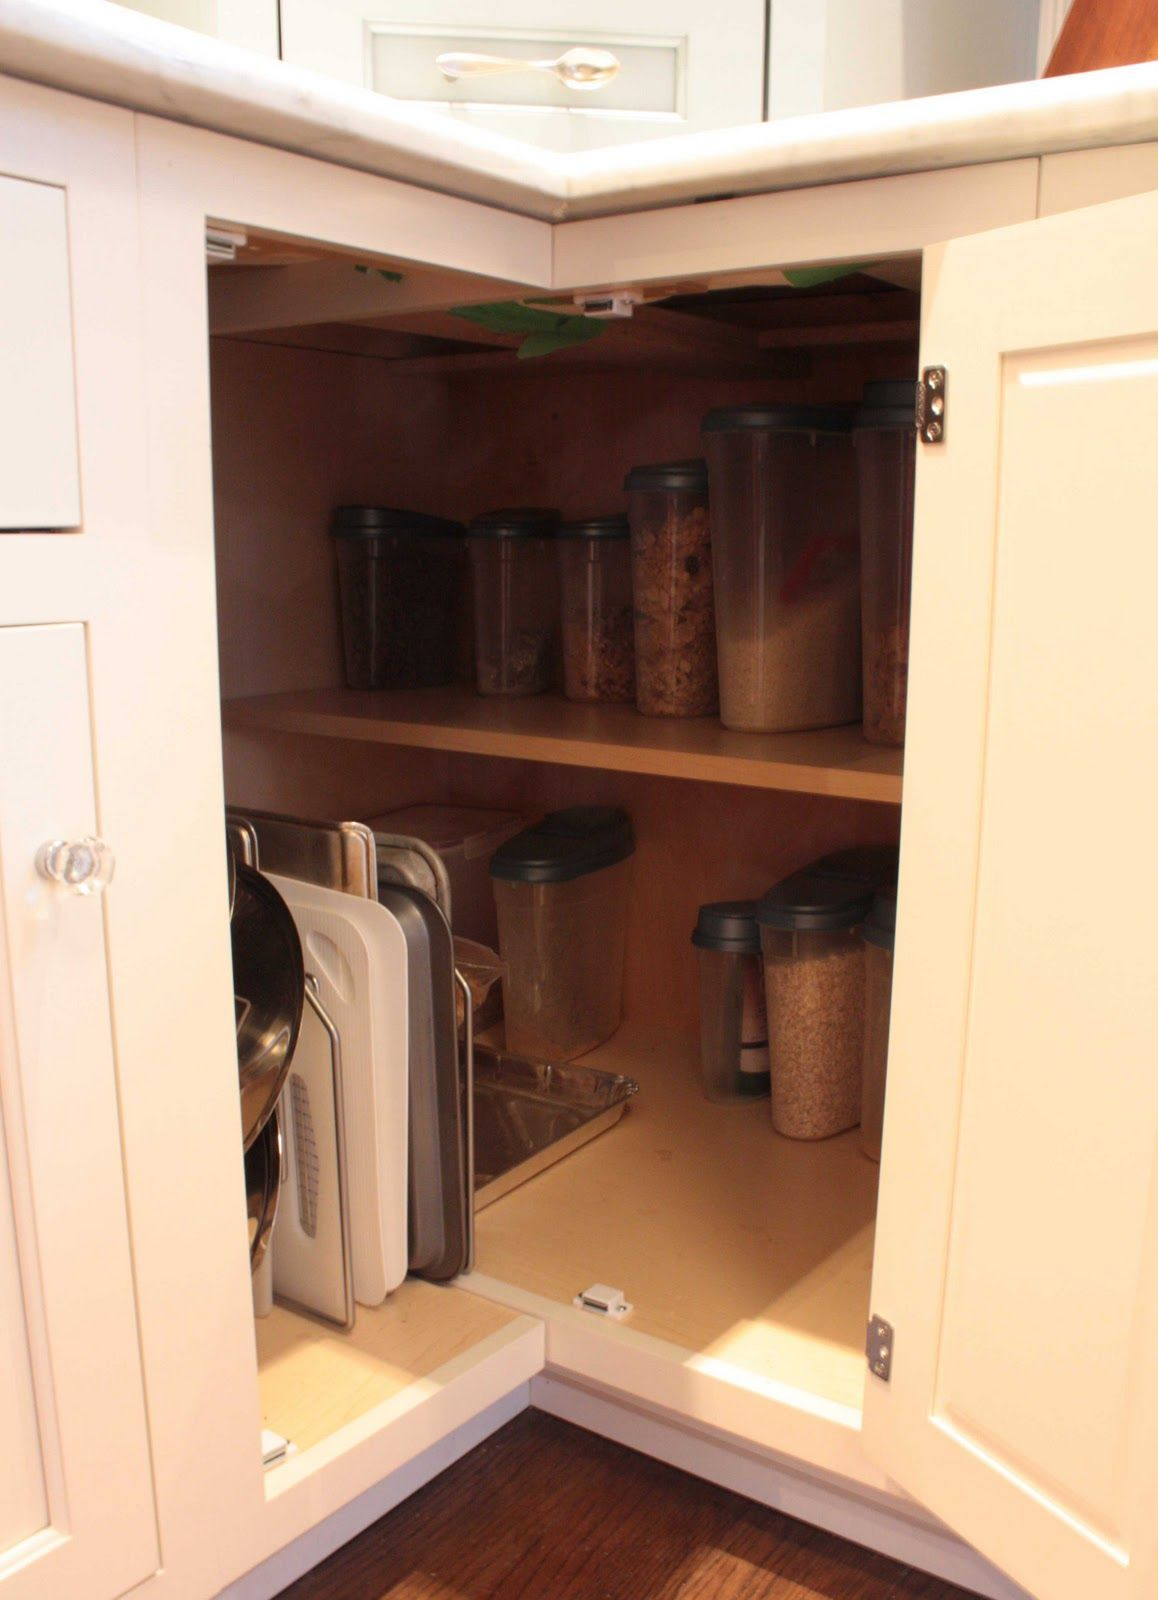 Kitchen Cabinets Lazy Susan Corner Cabinet Now This Is Cool Gotta Figure Out How To Take Out My Lazy